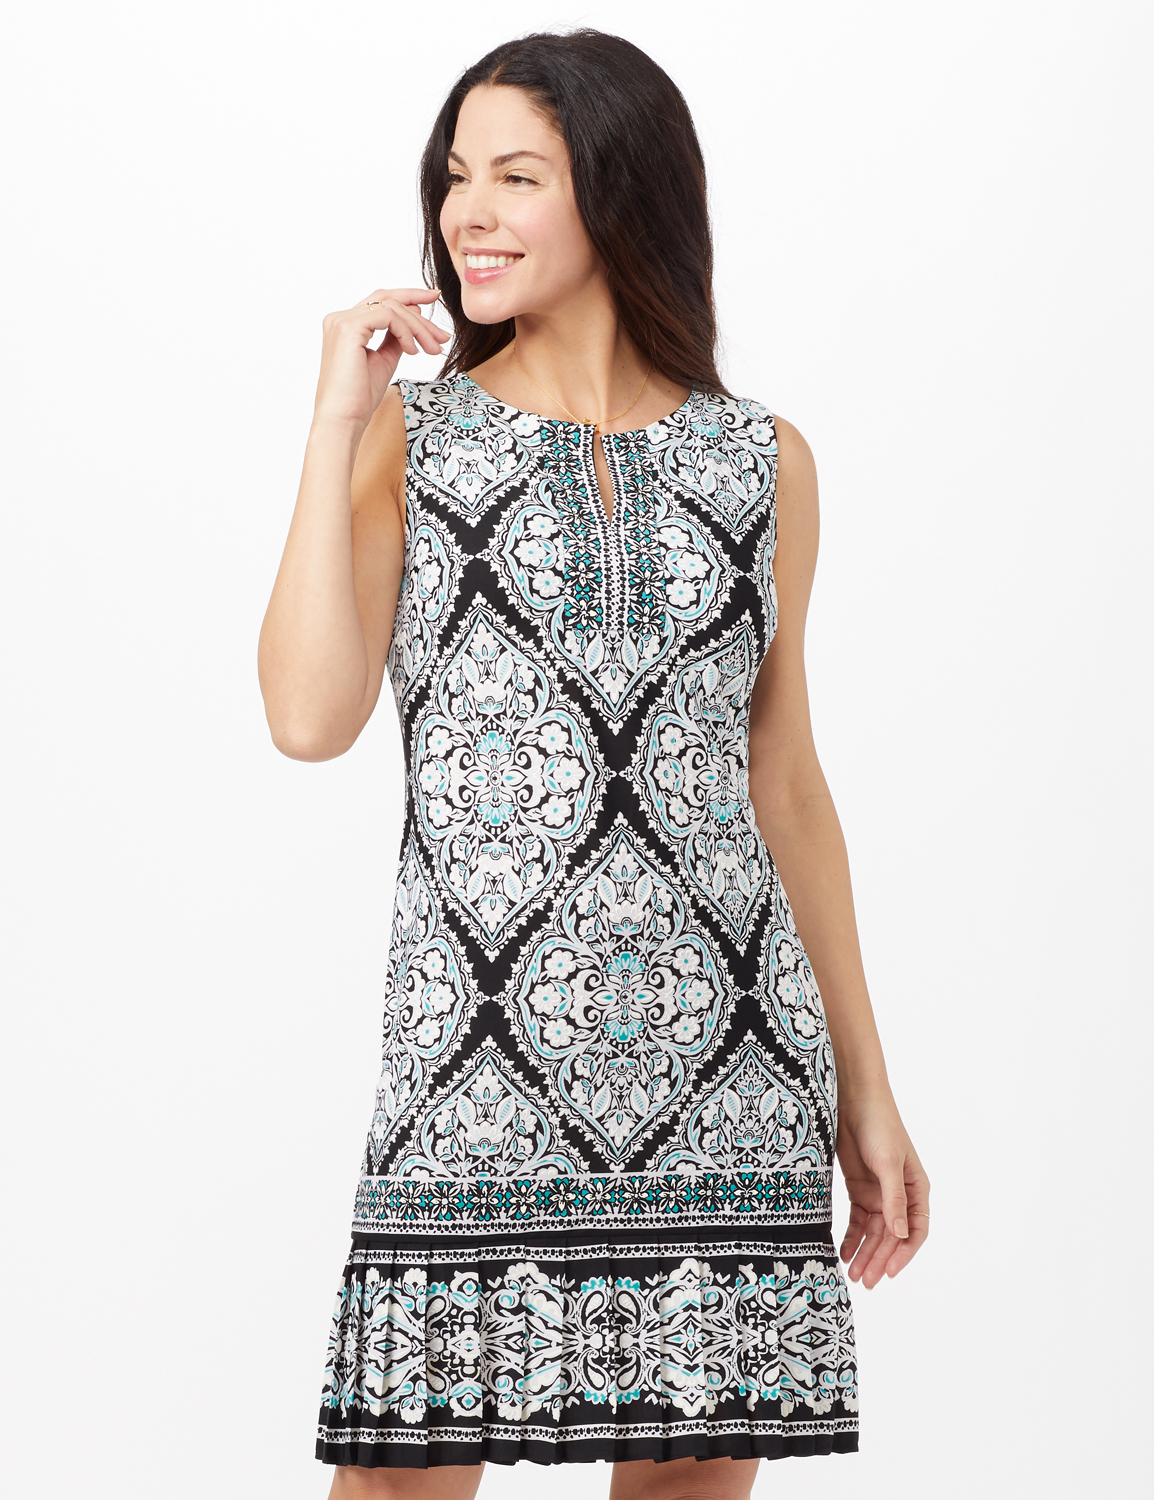 Medallion Puff Print with Pleat Hem Dress -Black/Aqua - Front